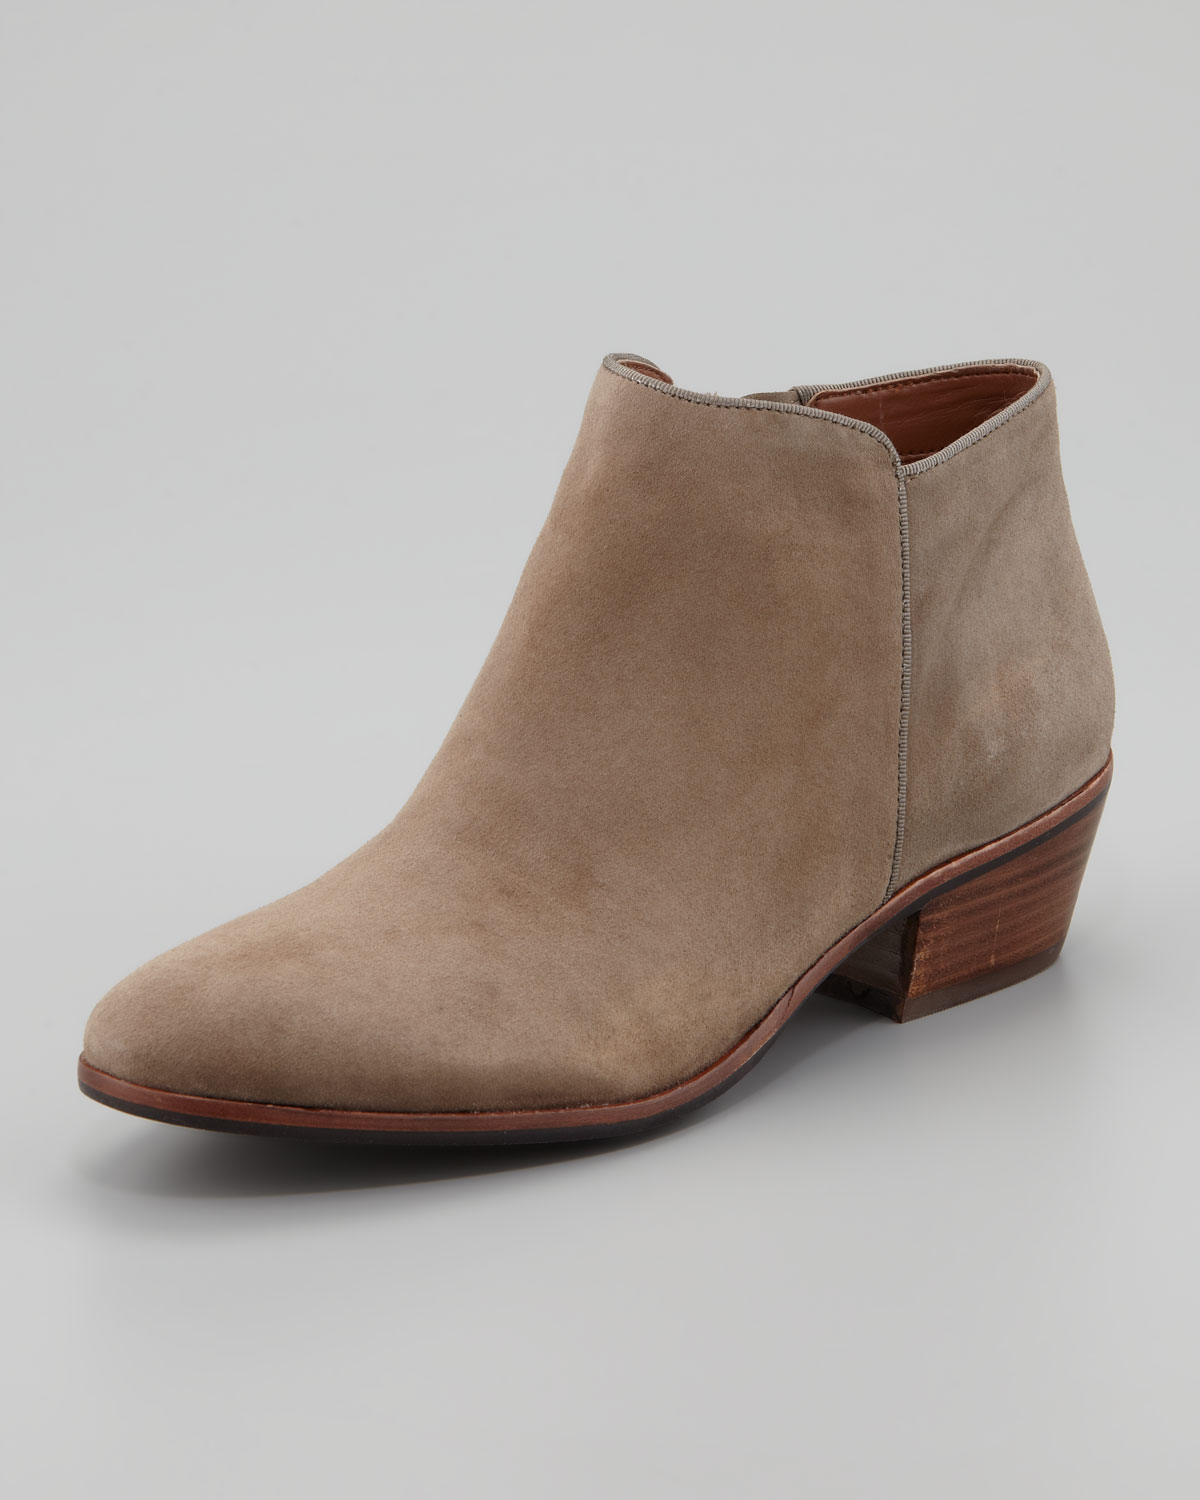 Sam edelman Womens Petty Suede Ankle Boot Tan in Brown | Lyst